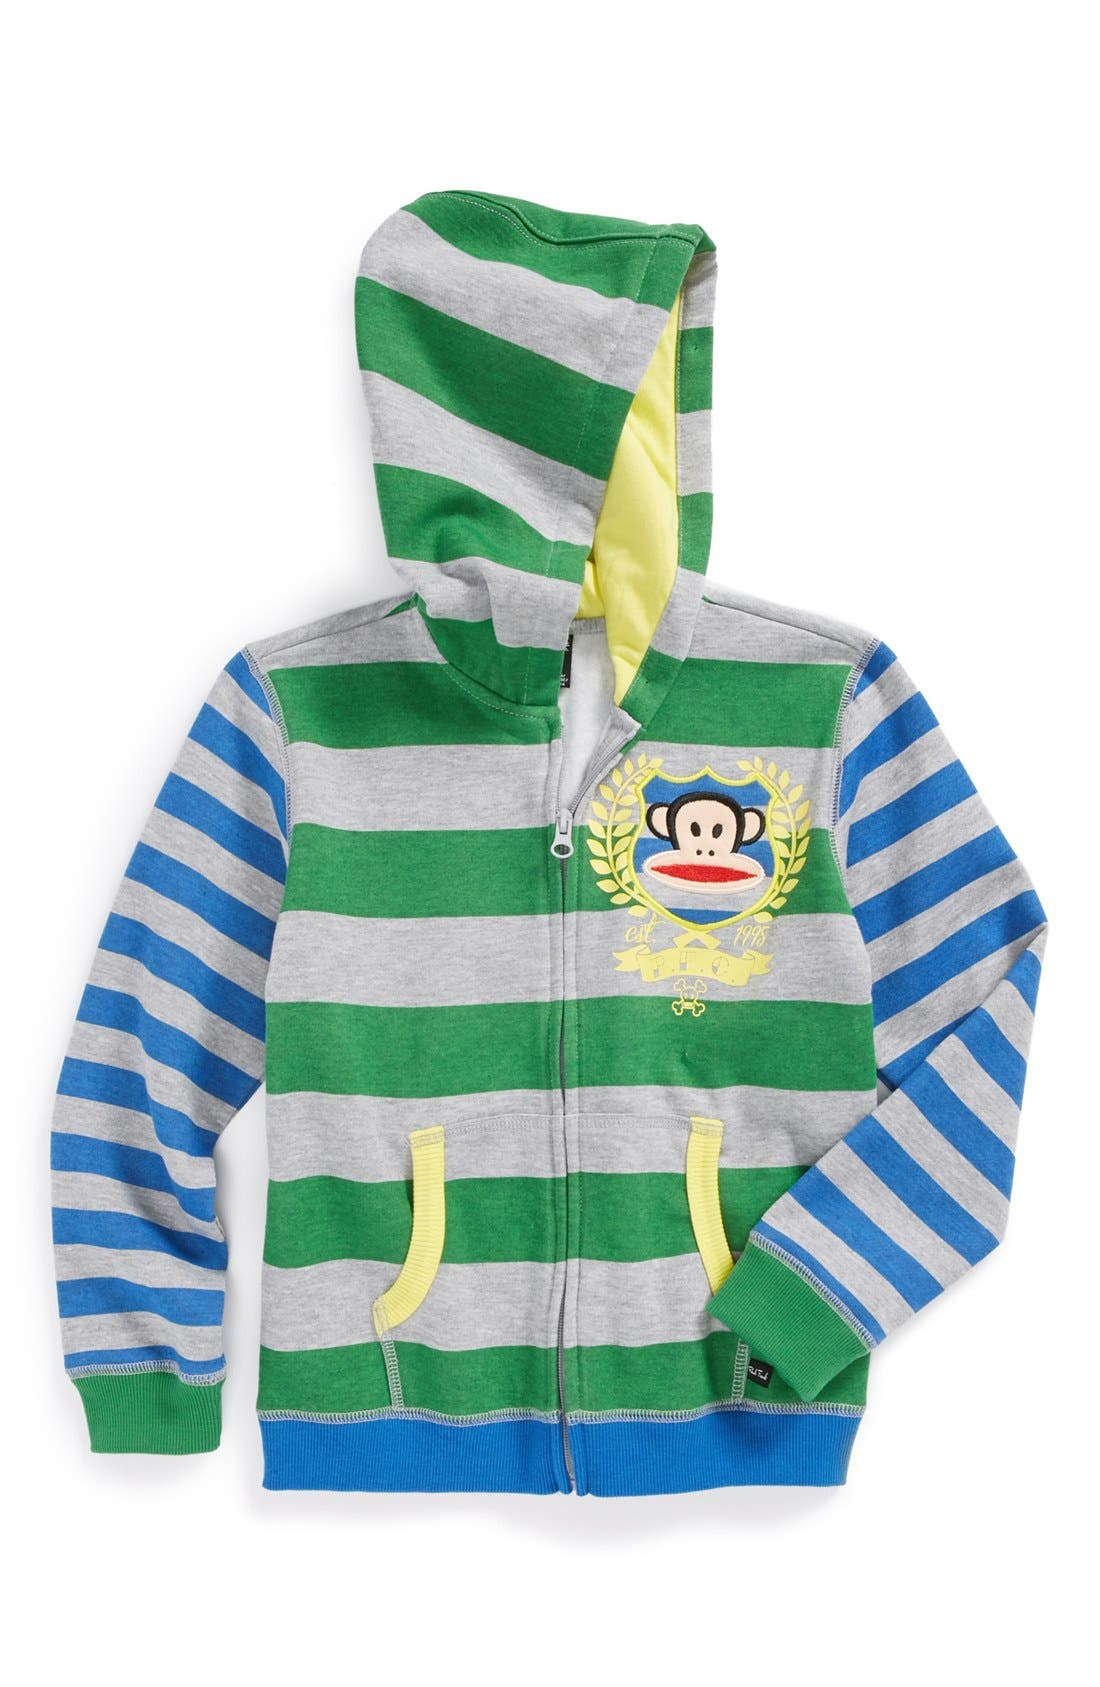 Main Image - Paul Frank 'Baseball' Hoodie (Little Boys)